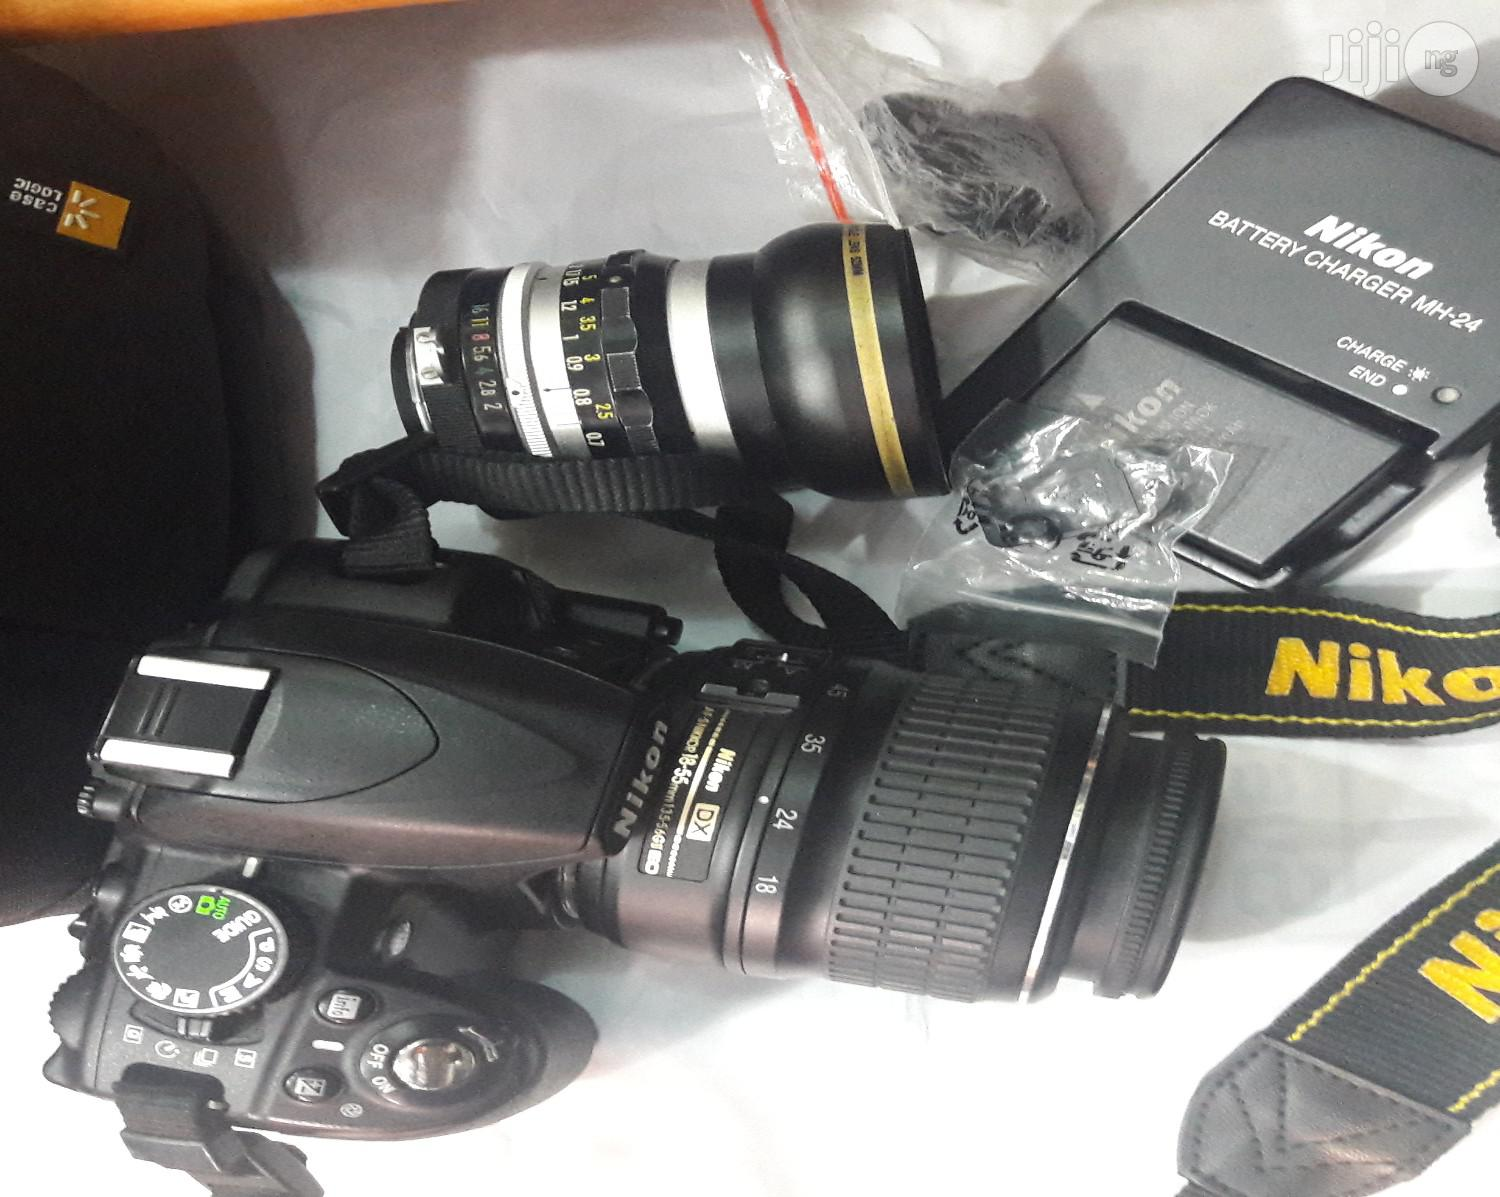 Nikon D3100 Professional Video Camera